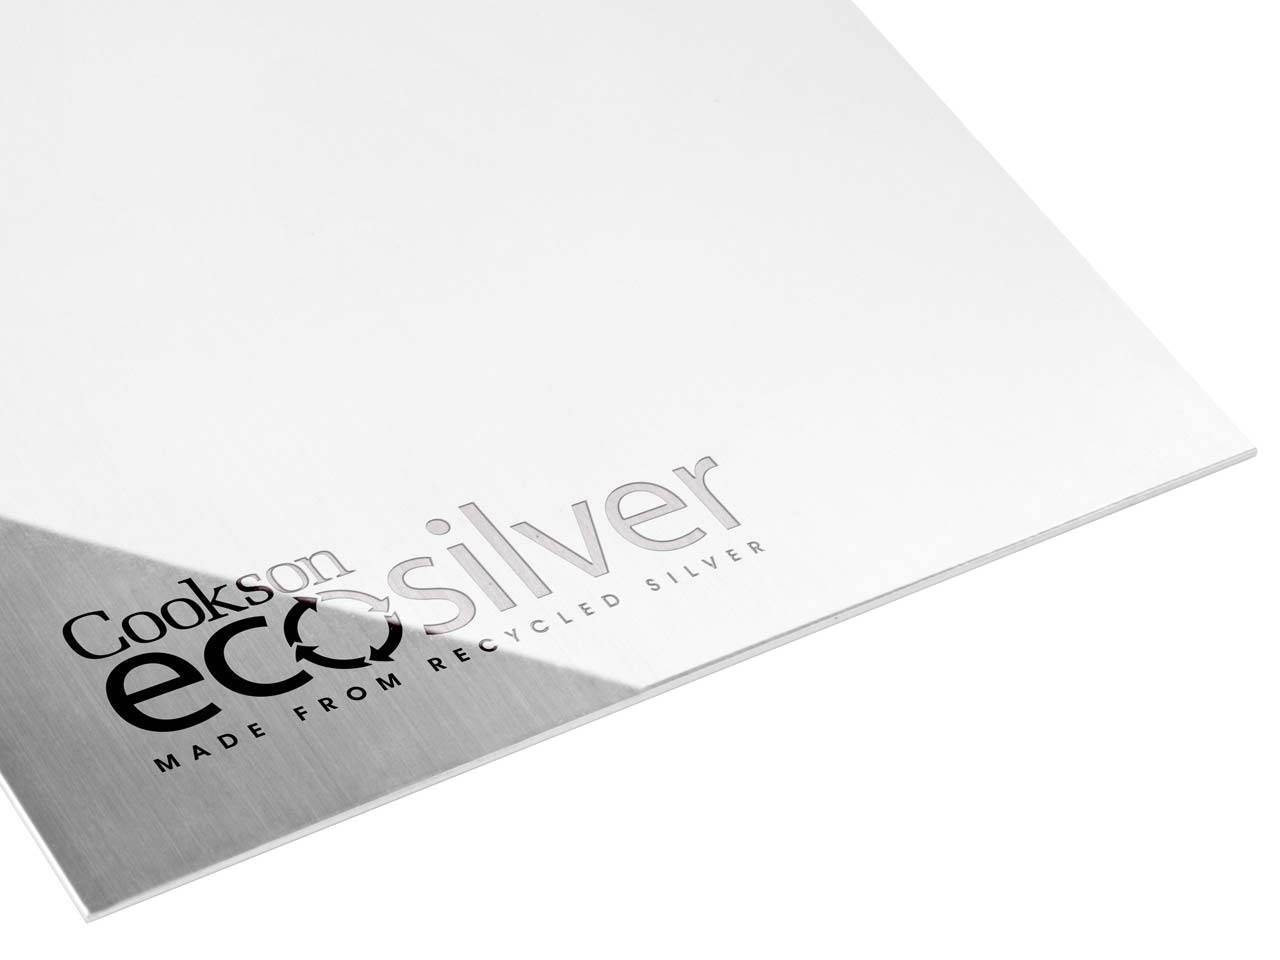 Ecosilver Sheet 0.80mm